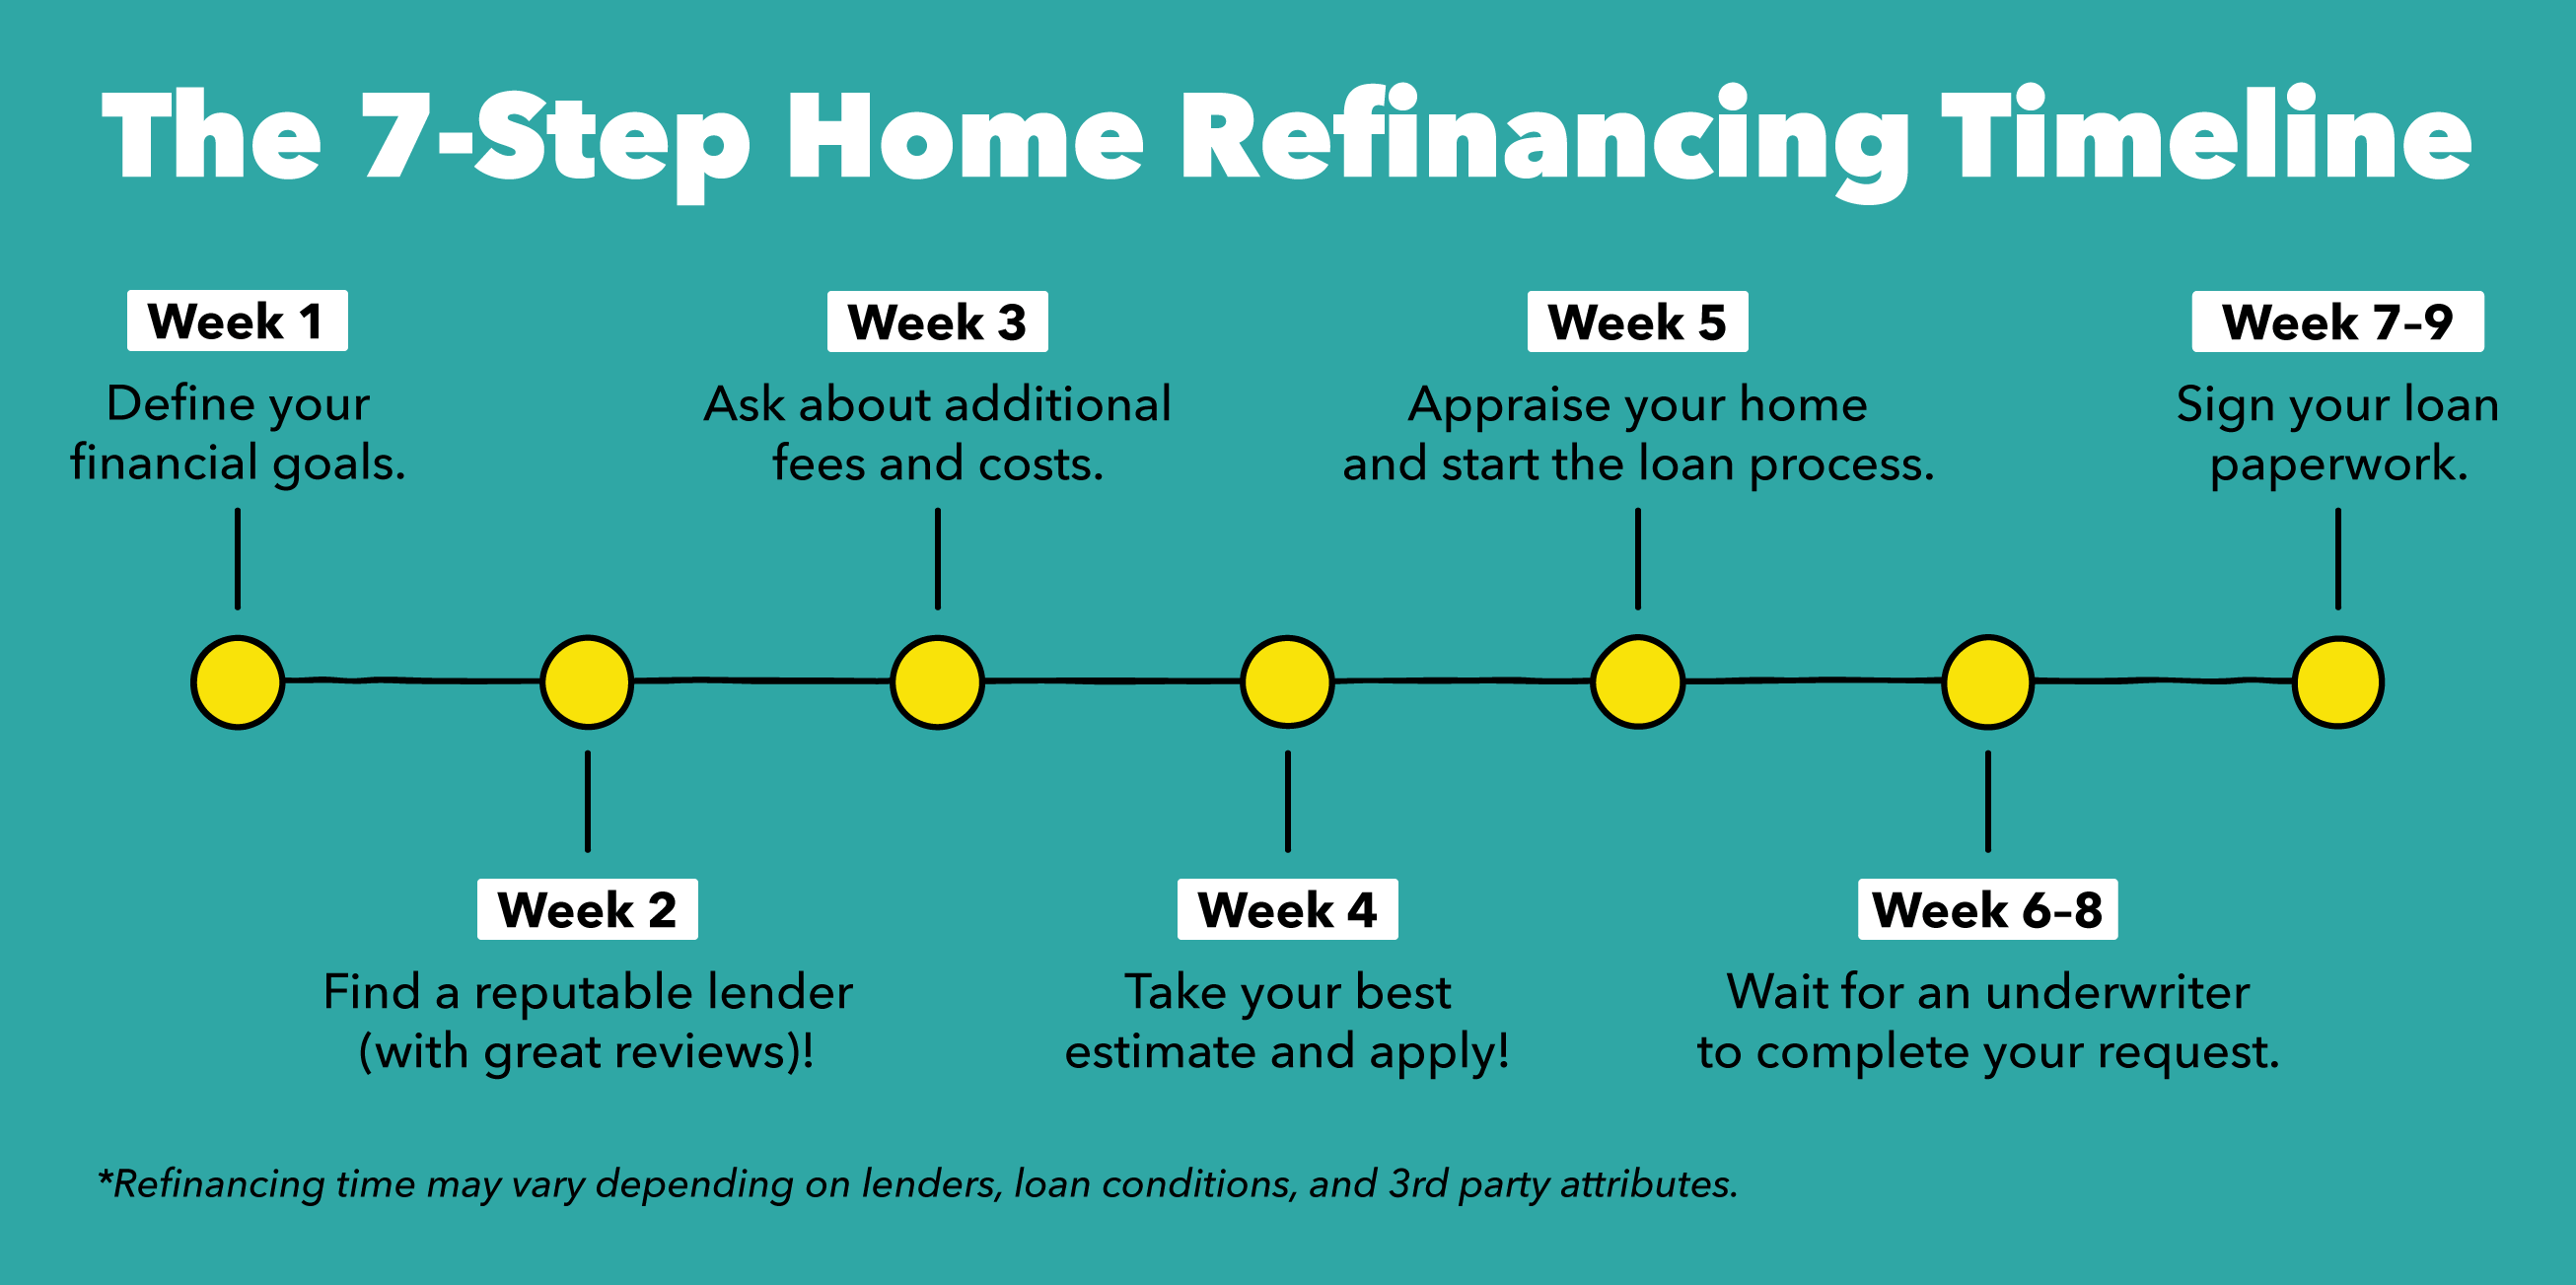 The 7-Step Home Refinancing Timeline